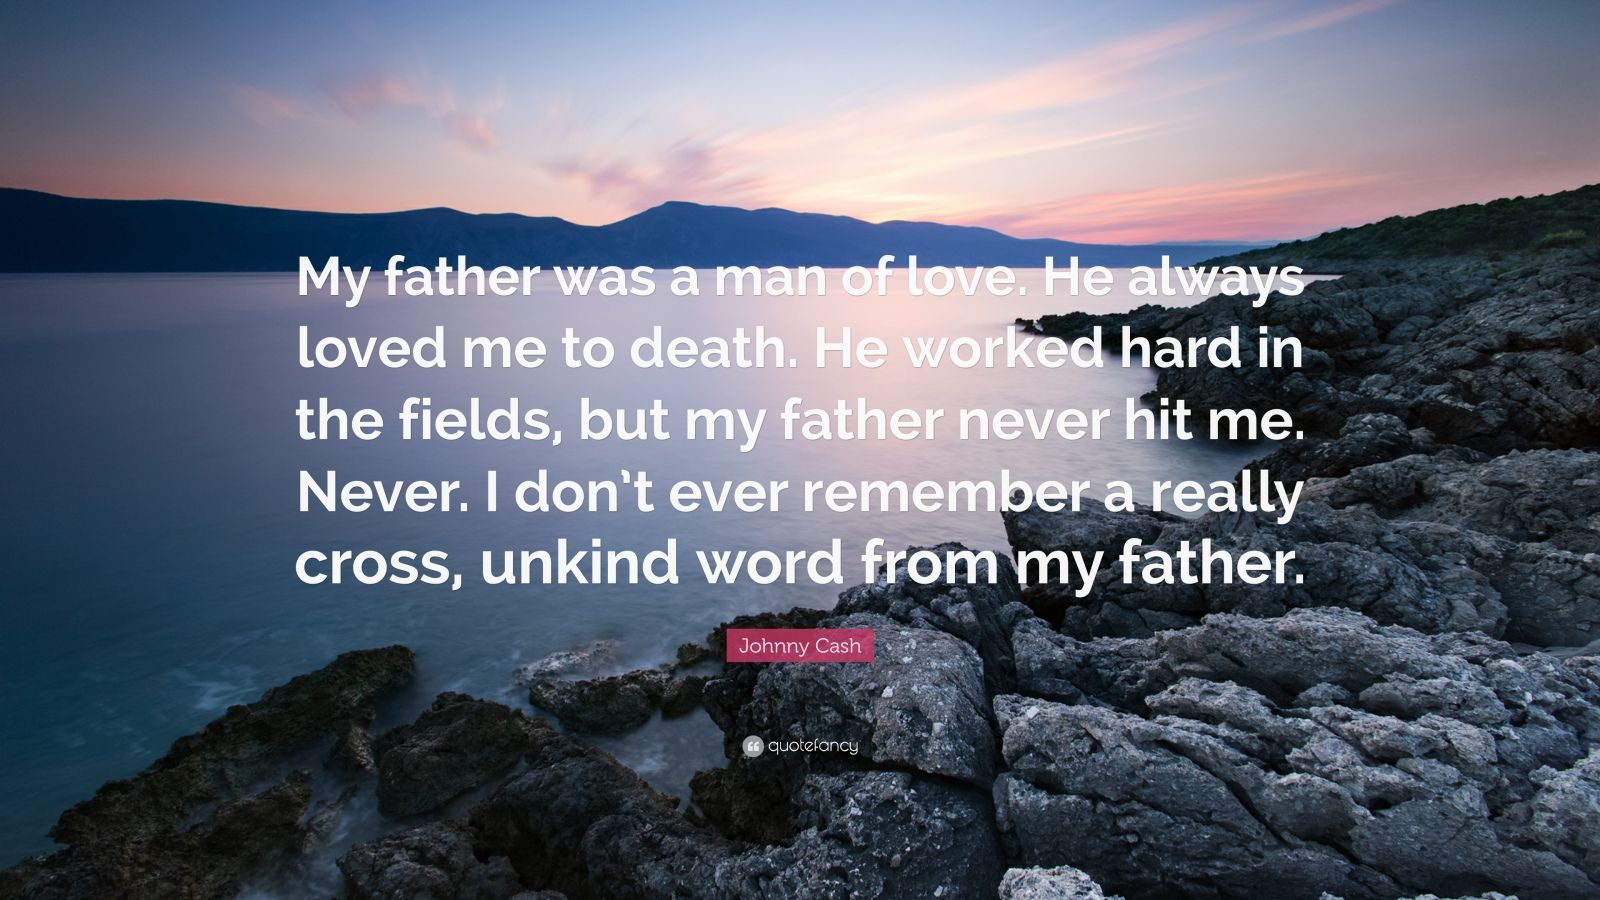 """Johnny Cash Quote: """"My father was a man of love. He always loved me to death. He worked hard in the fields, but my father never hit me. Never. I don't ever remember a really cross, unkind word from my father."""""""